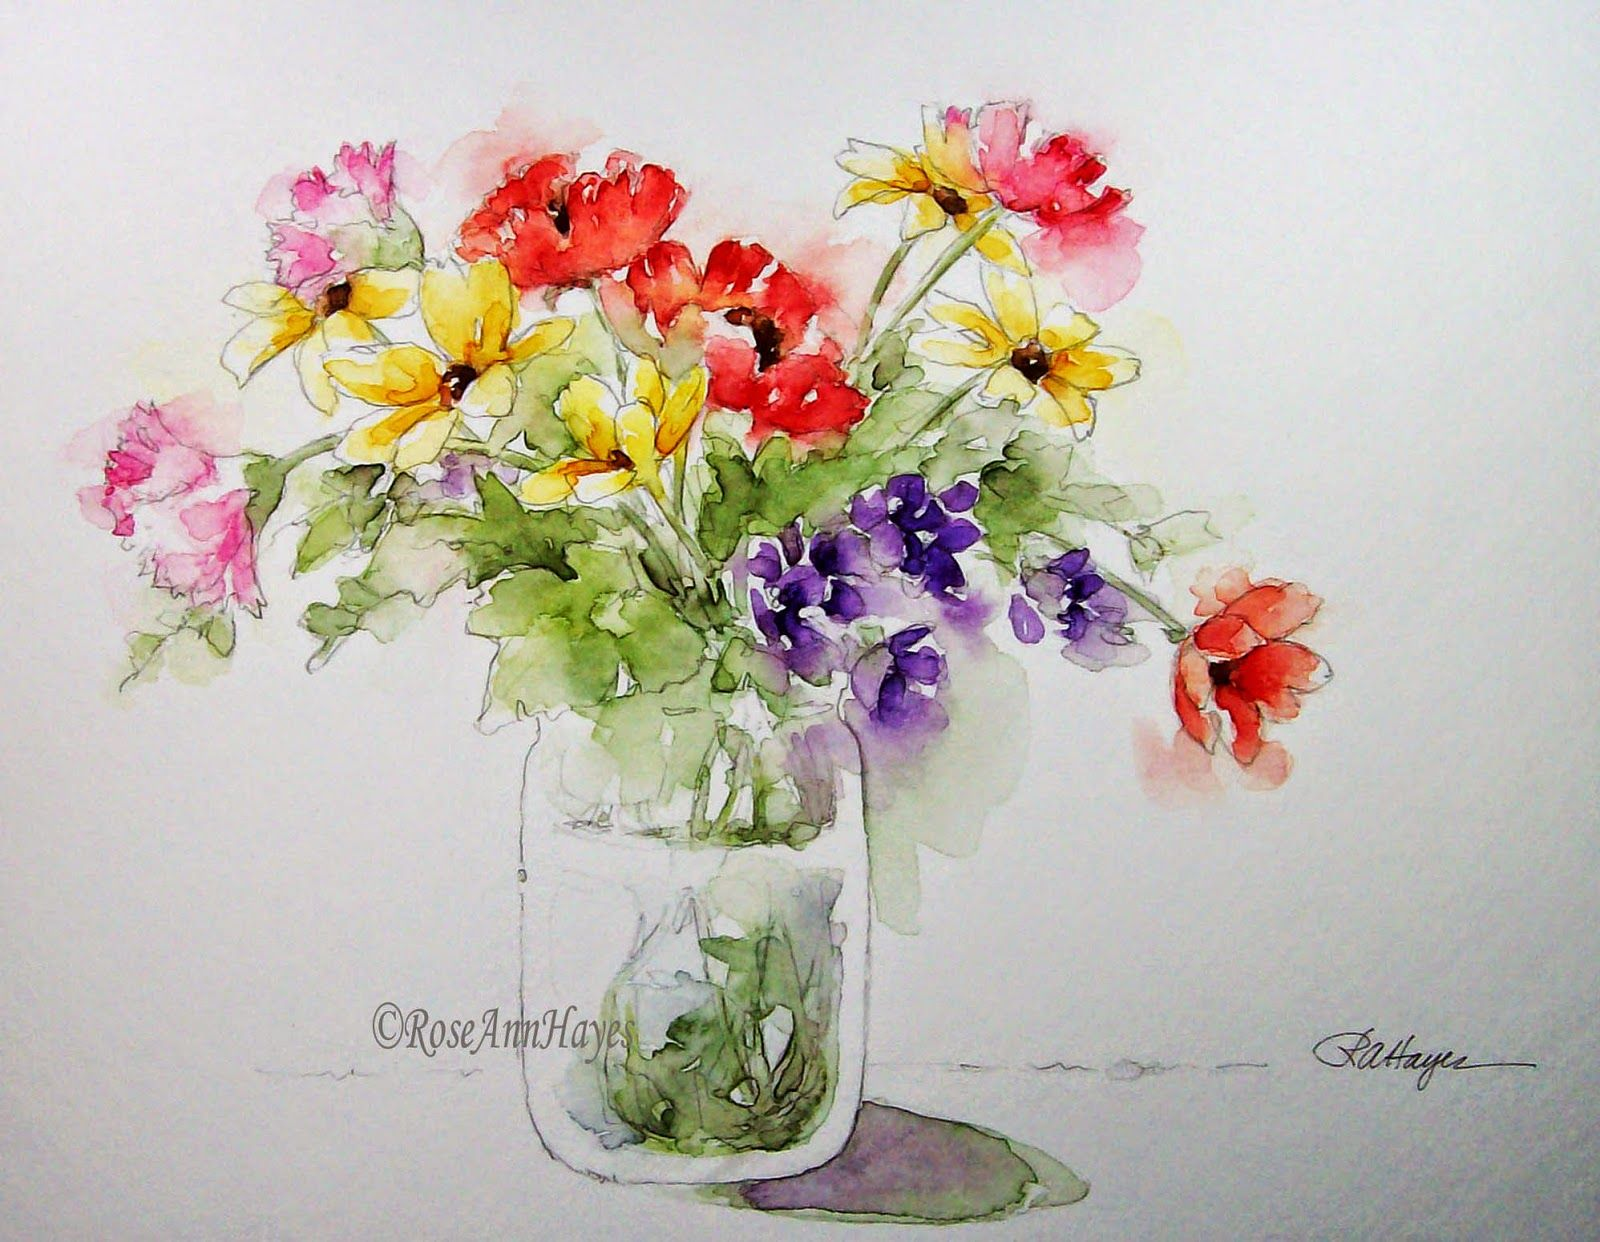 Floral Bouquet Watercolor Painting. Garden Flowers in an